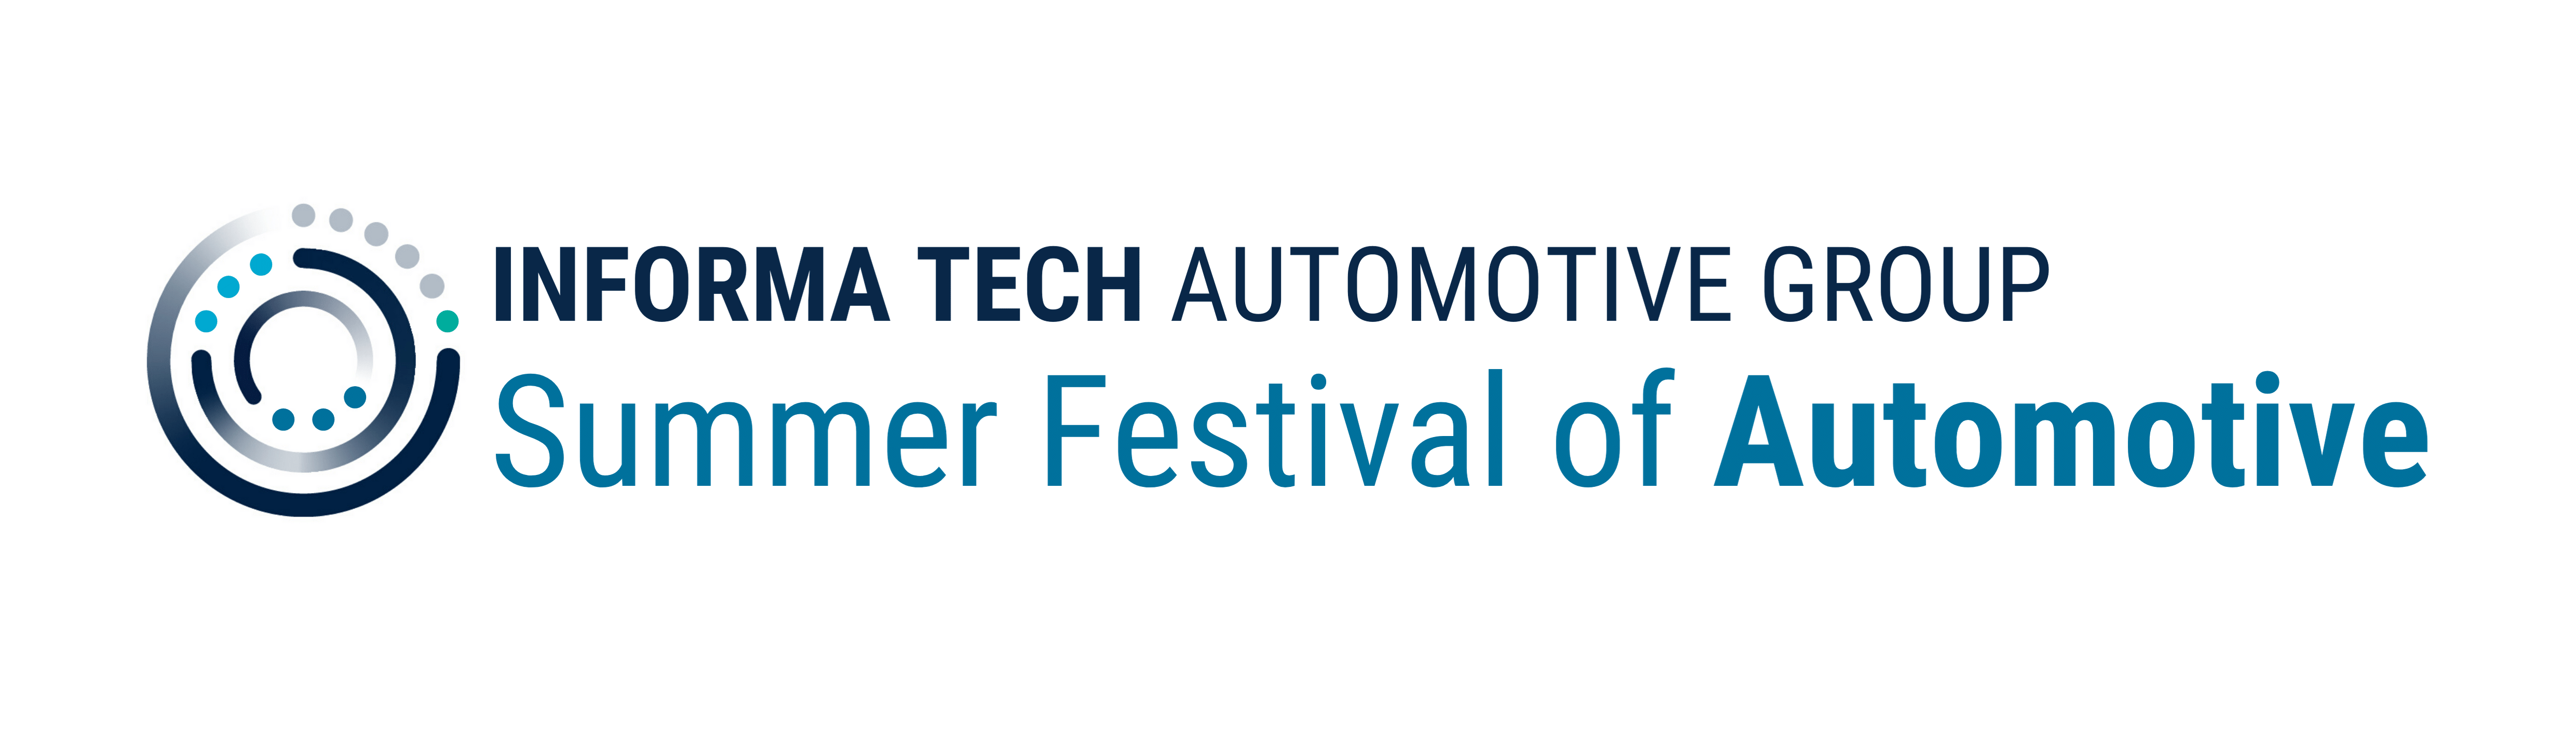 Informa Tech Automotive Group, Summer Festival of Automotive